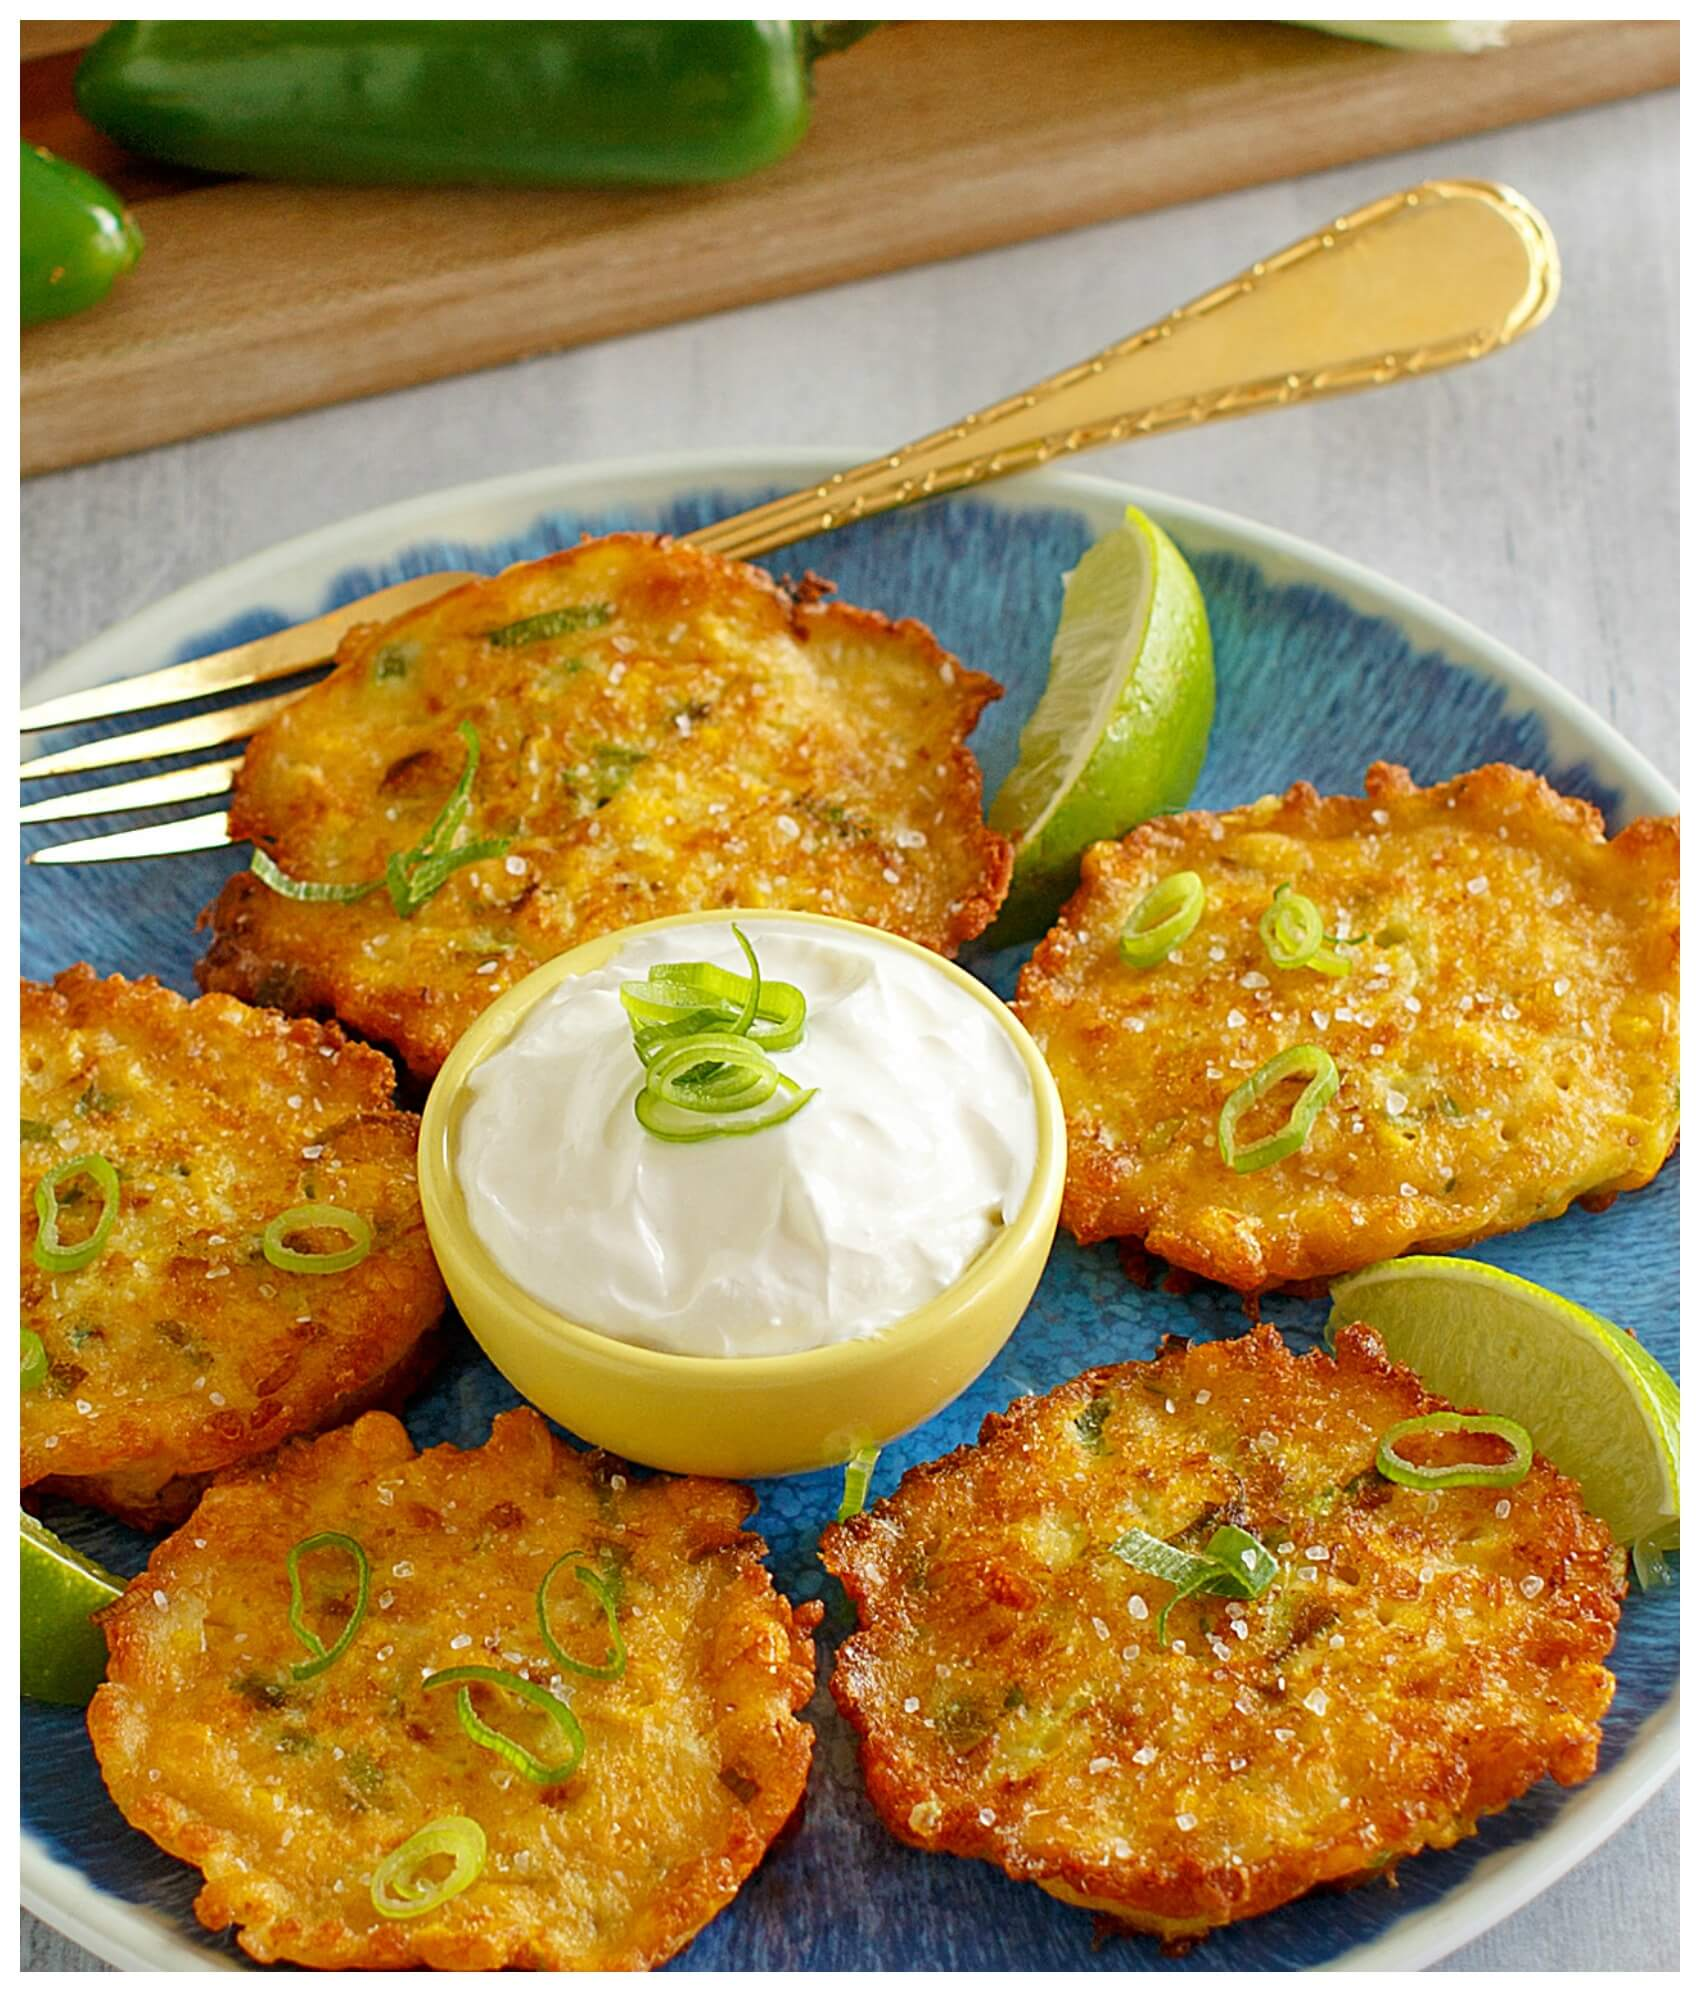 Appetizer of corn fritters with dipping sauce made with canned sweet corn.